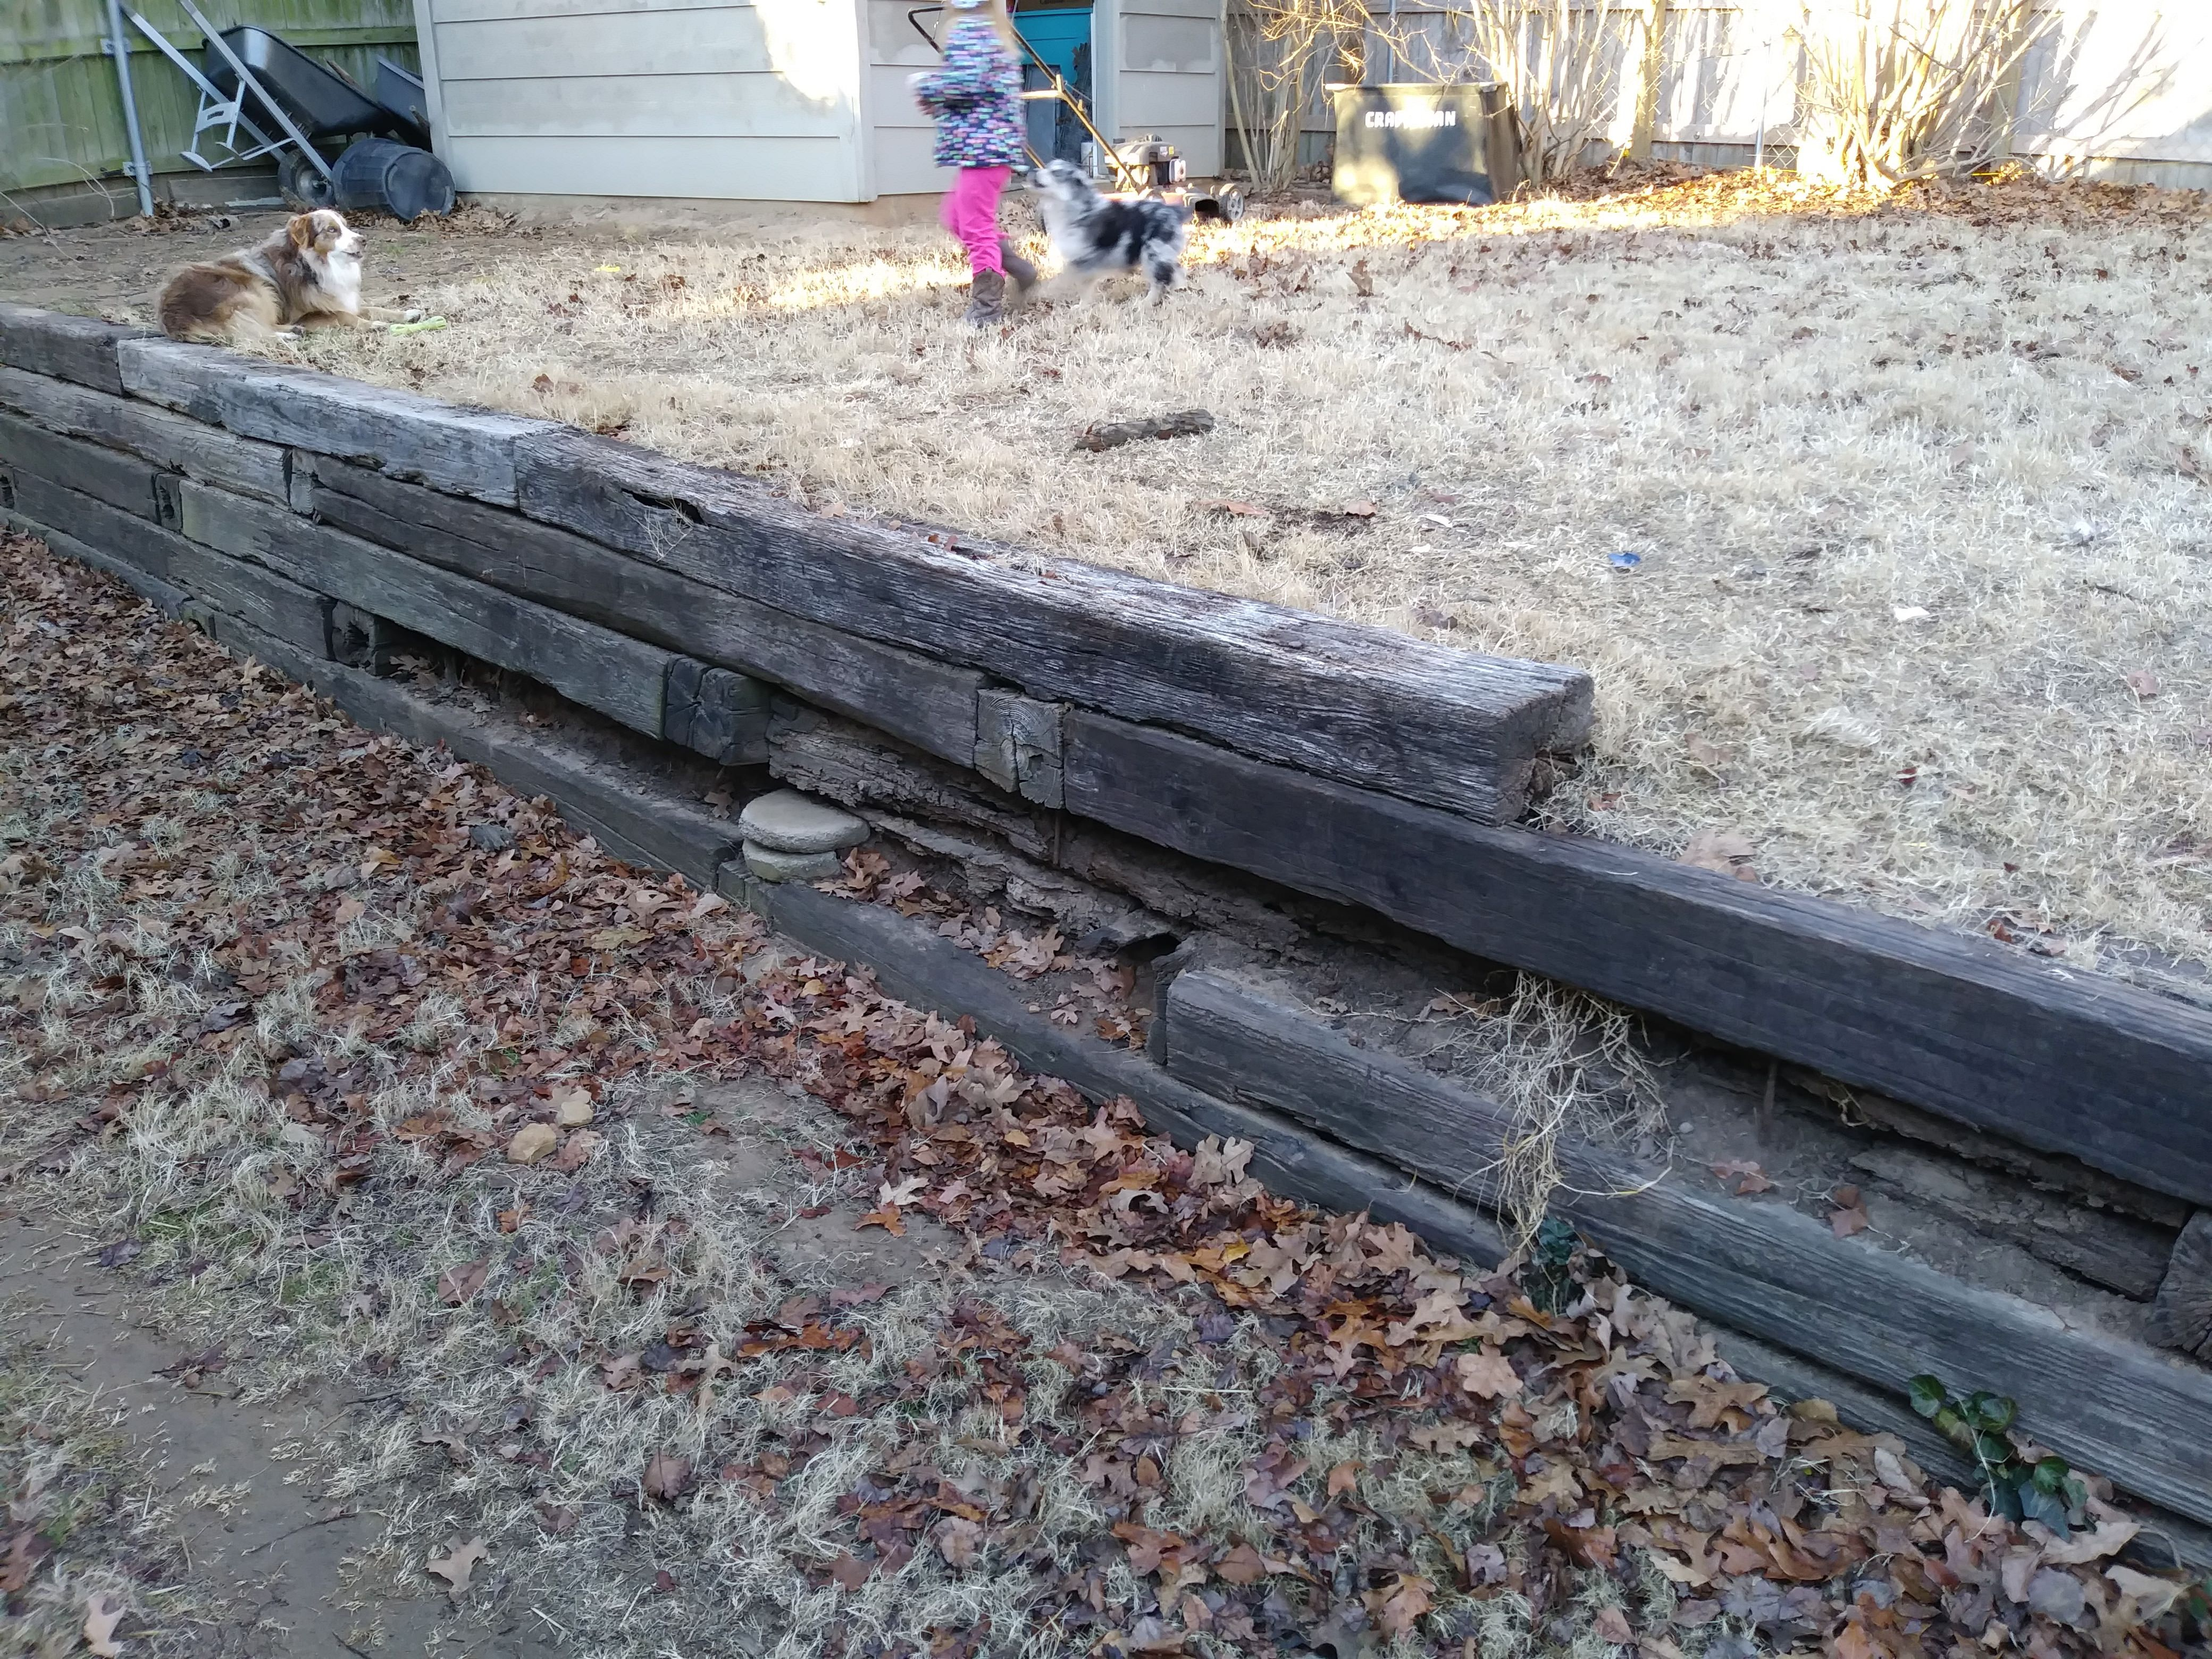 Does Anyone Have Suggestions For Repairing A Wood Retaining Wall It S Made From Railroad Wood Retaining Wall Retaining Wall Repair Railroad Tie Retaining Wall